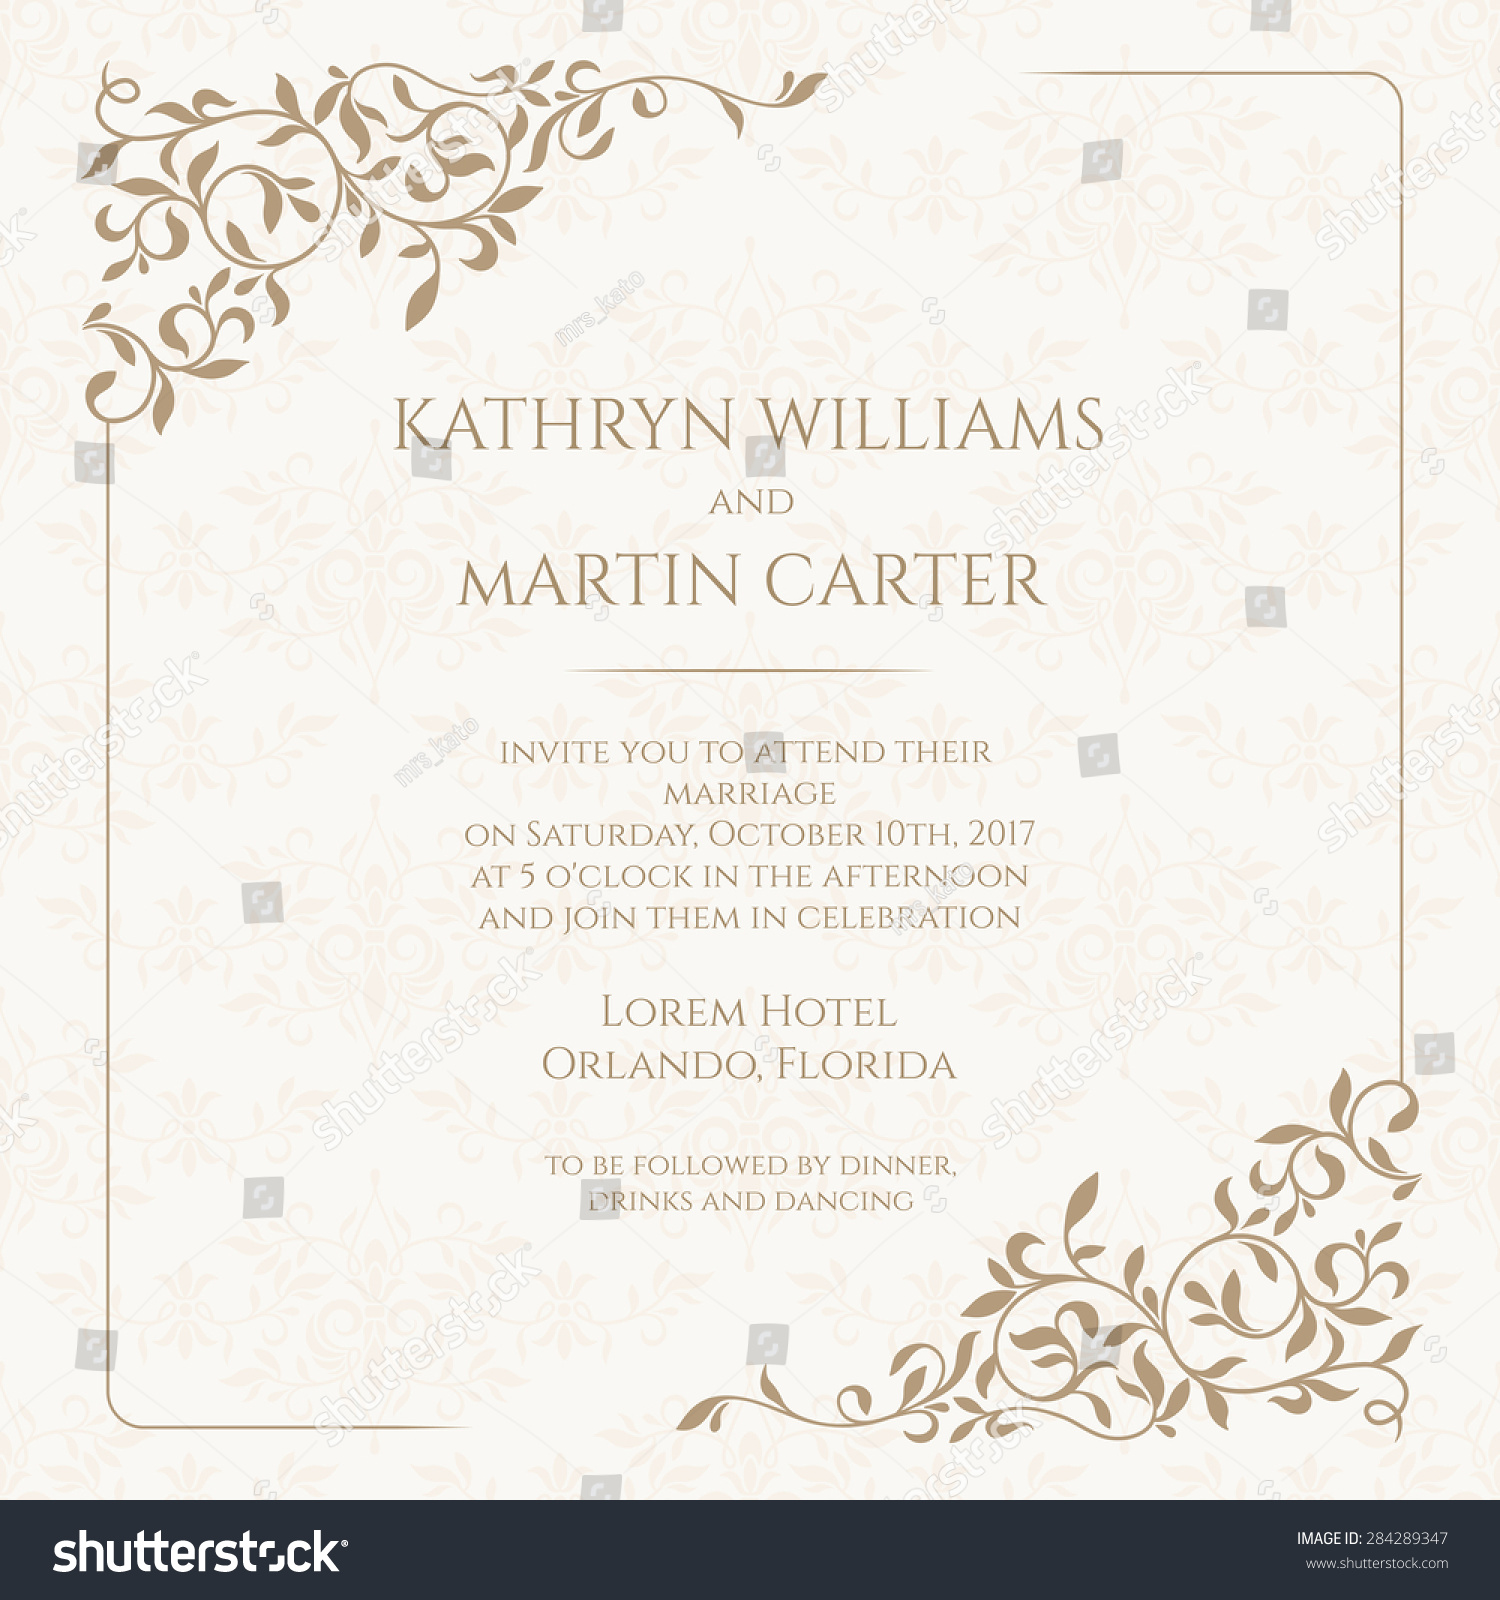 Invitation Card Floral Seamless Pattern Wedding Stock Vector